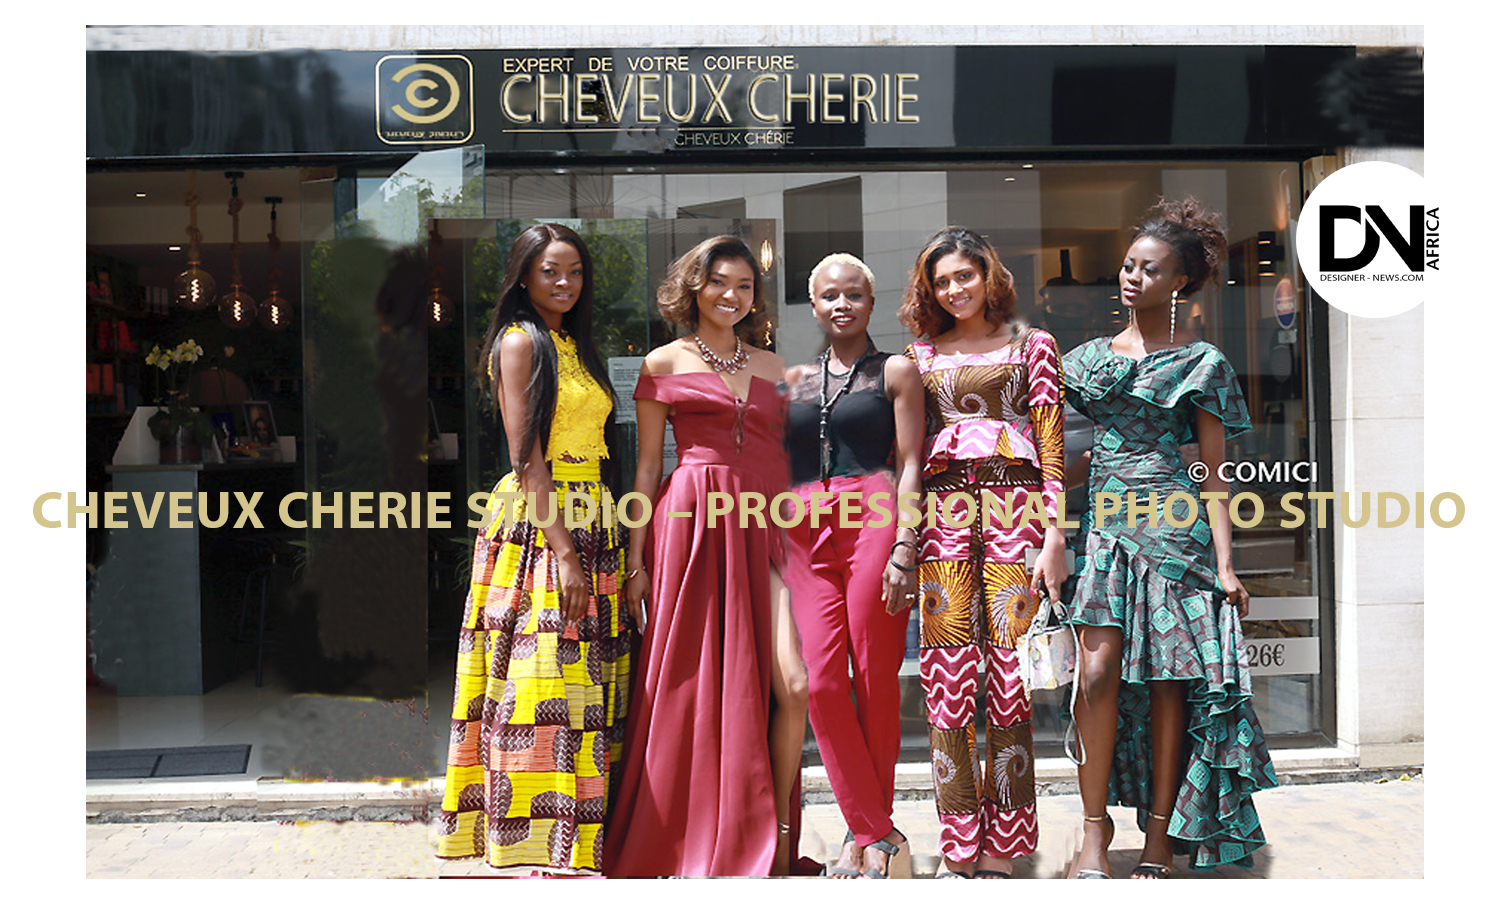 AFRICAN FASHION STYLE MAGAZINE - Miss-Ivory COAST - SUY FATEM - CHEVEUX CHERIE STUDIO - Guo Pei SS18 _ Professional Photo Studio by Marieme DUBOZ - Hairstyle Marieme DUBOZ - Photographer DAN NGU - Media Partner DN AFRICA - STUDIO 24 NIGERIA - STUDIO 24 INTERNATIONAL - Ifeanyi Christopher Oputa MD AND CEO OF COLVI LIMITED AND STUDIO 24 - CHEVEUX CHERIE and CHEVEUX CHERIE STUDIO BY MARIEME DUBOZ - MUA MARIEME DUBOZ - MODEL HELENA - NU SKIN SKIN CARE - -GALVANIC CARE - LUMISPA AGELOC - ICON-LOOK-BOOK - ICON PROFESSIONAL HAIR CARE - Editorial Shoot - Fashion Editor Nahomie NOOR COULIBALY